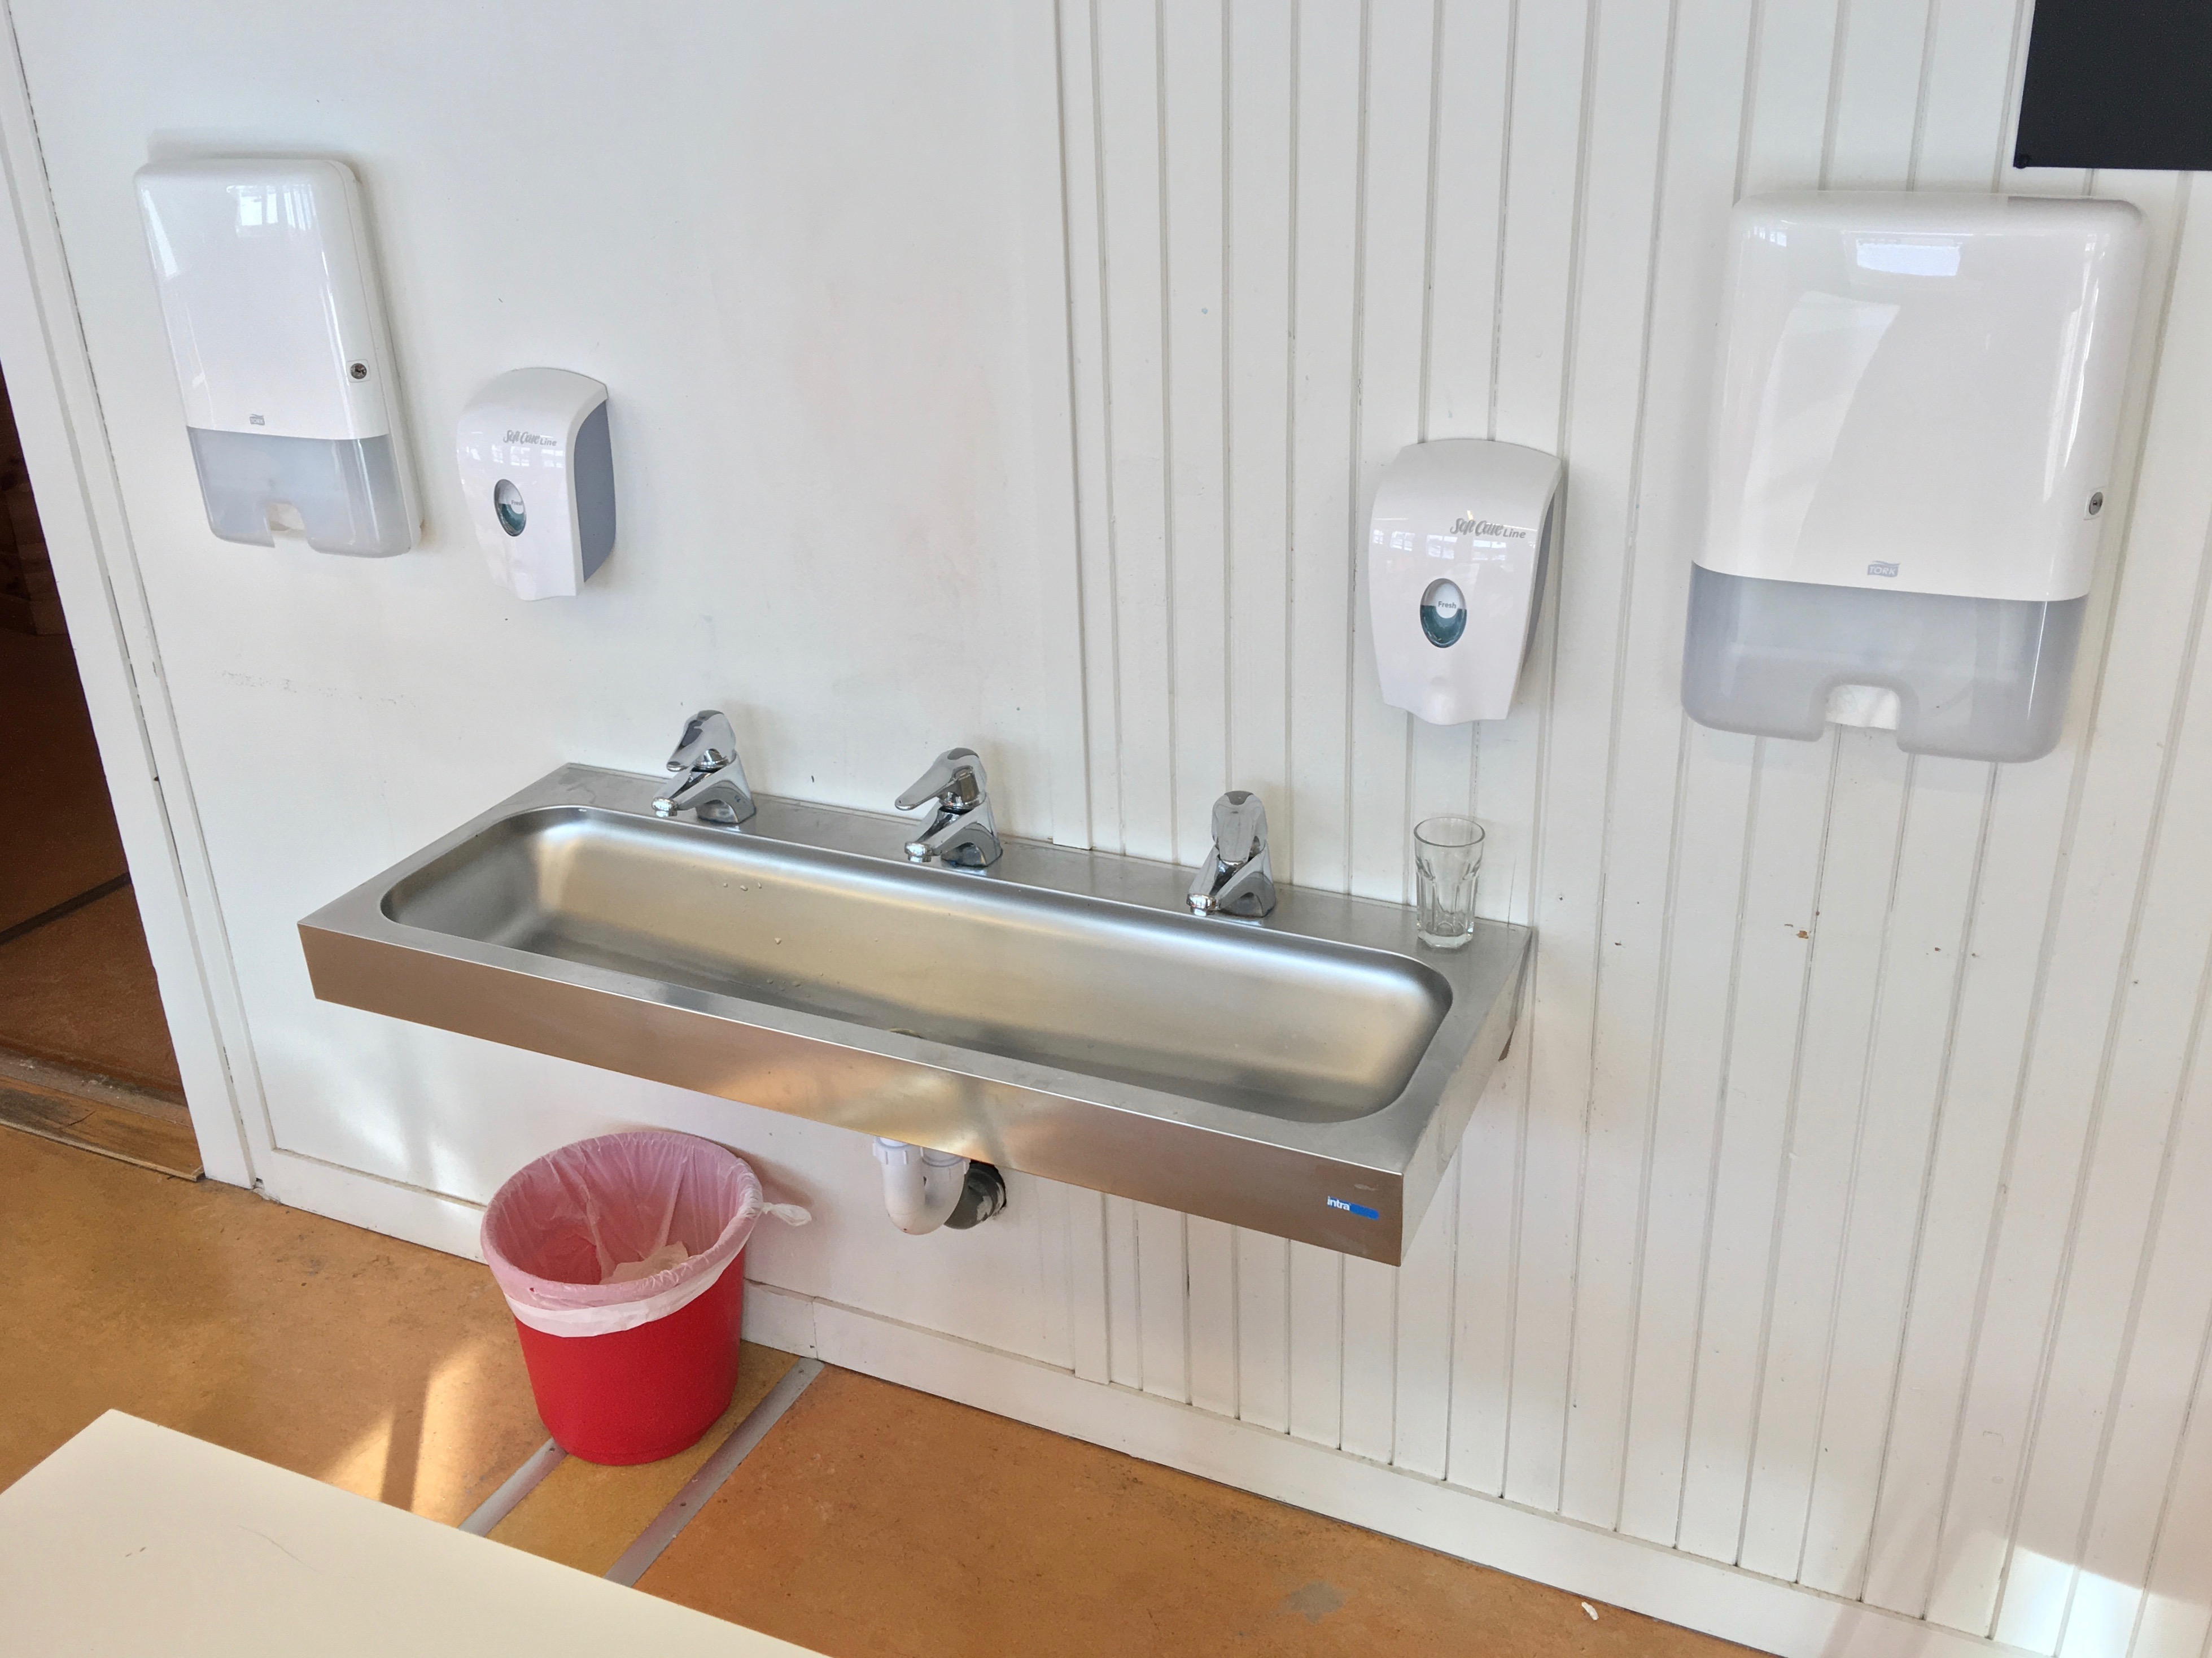 filesteel hand wash basin sink with three water taps dispensers for soap and - Wash Basin Sink